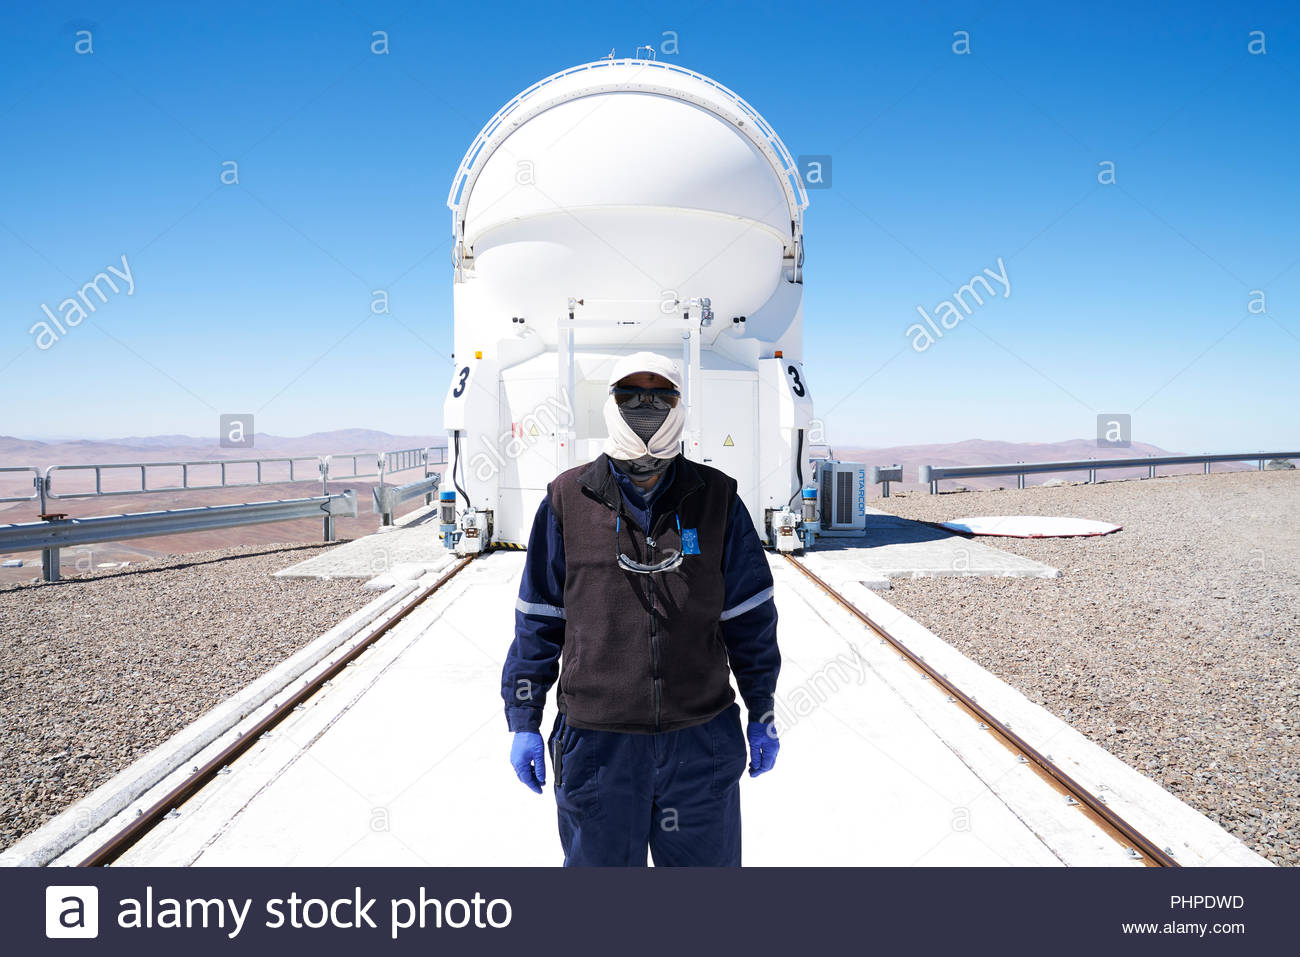 Masked scientist by telescope at Paranal Observatory - Stock Image